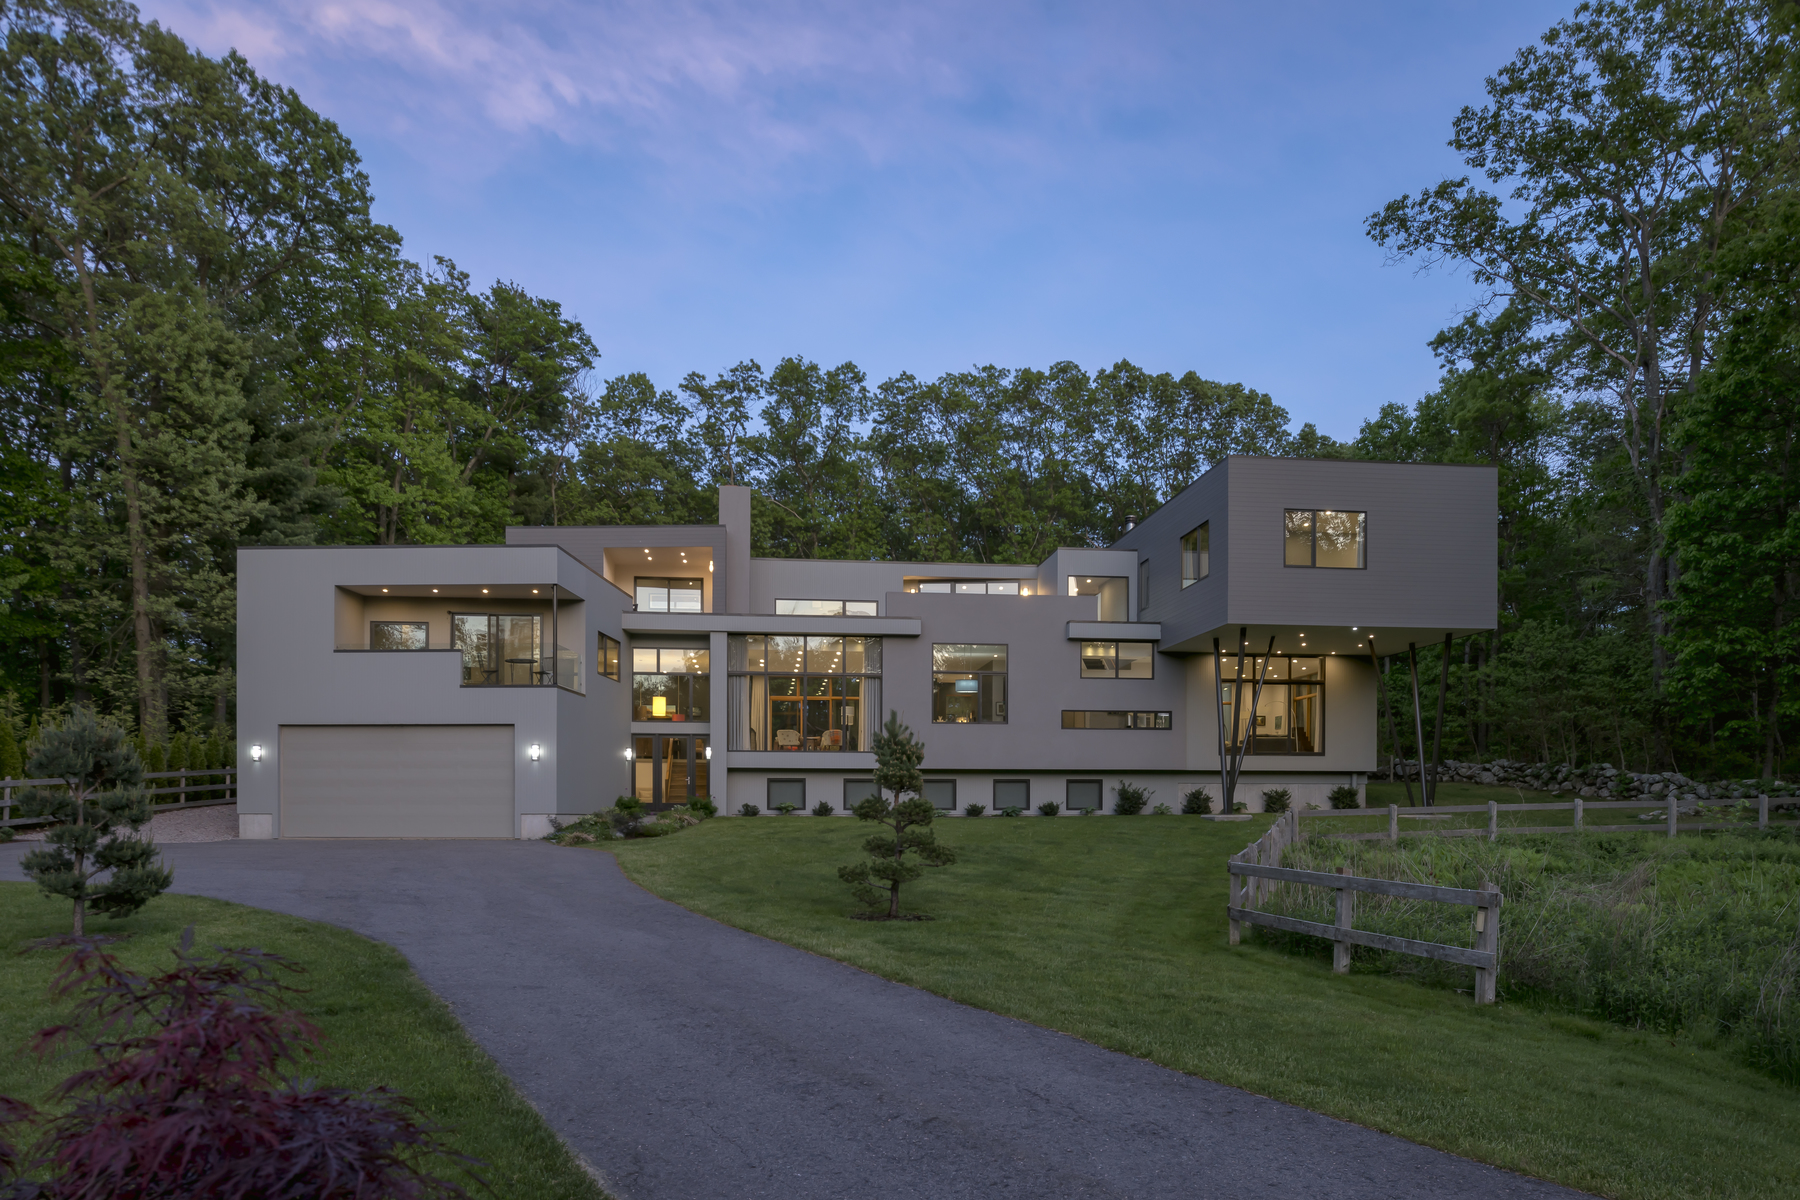 Single Family Home for Sale at Contemporary Masterpiece Situated On 2.15 Private And Pristine Acres 120 Governor Stoughton Lane Milton, 02186 United States